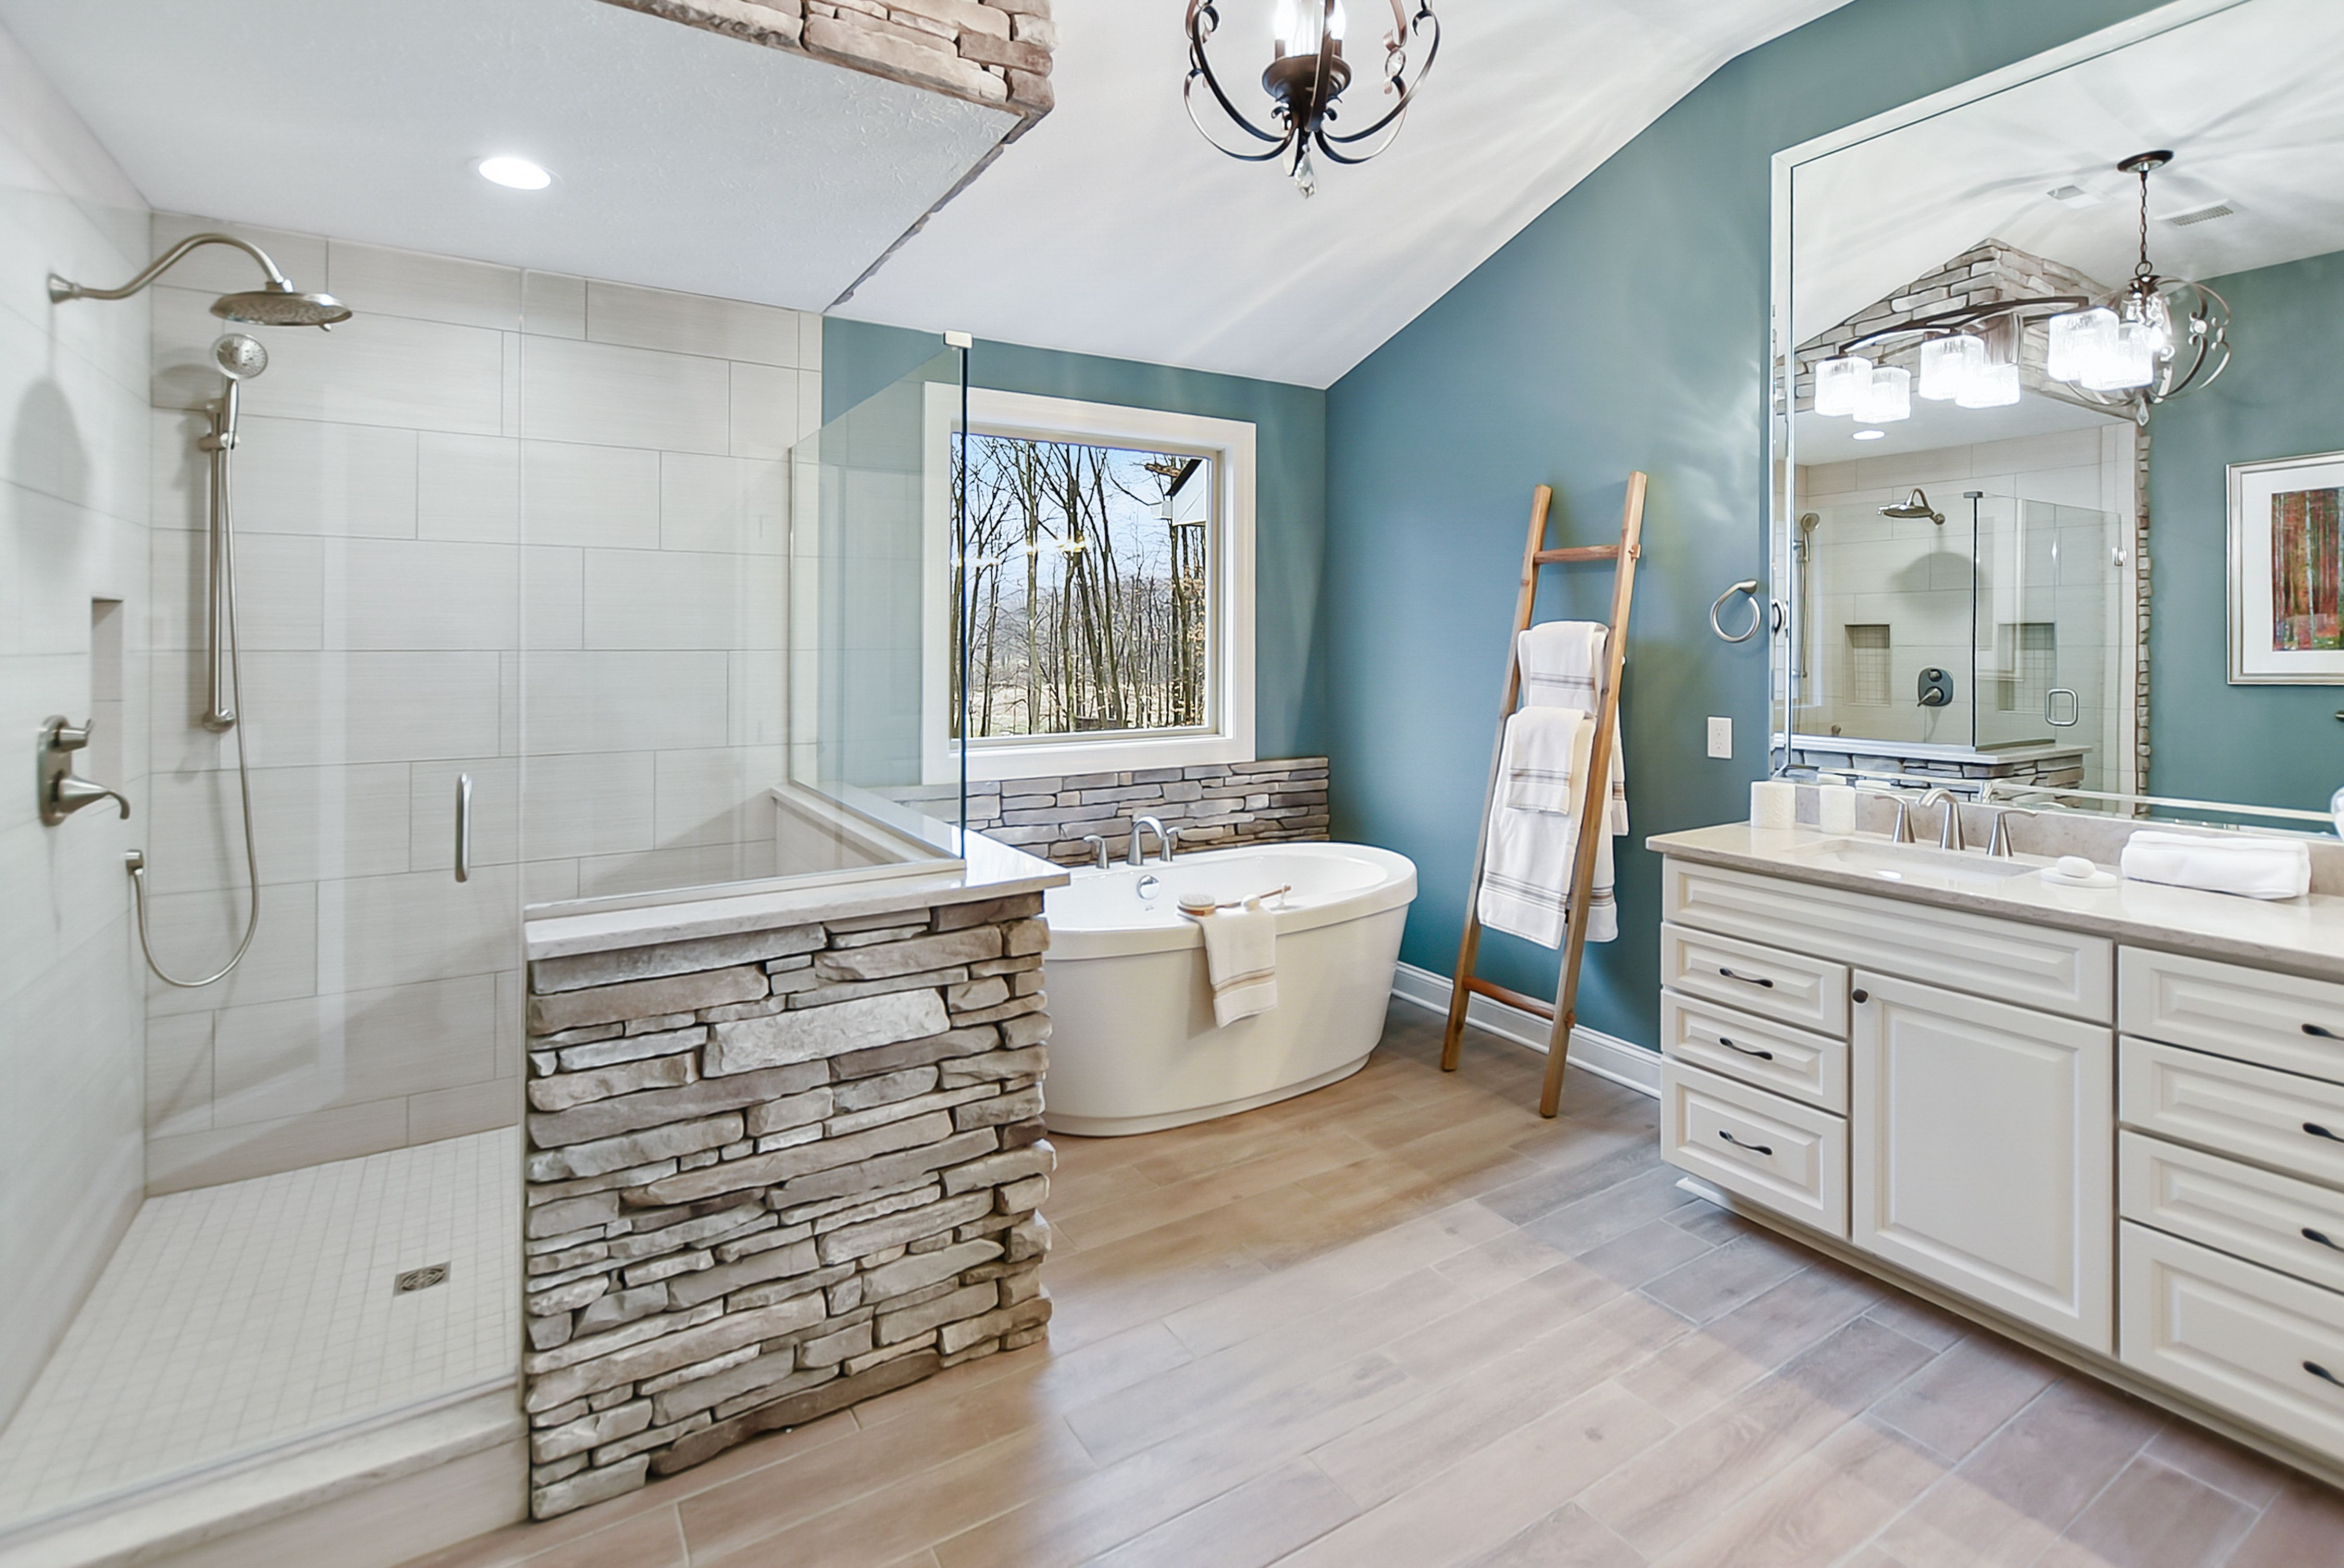 Bathroom featured in the Mercato By Parkview Custom Homes  in Cleveland, OH